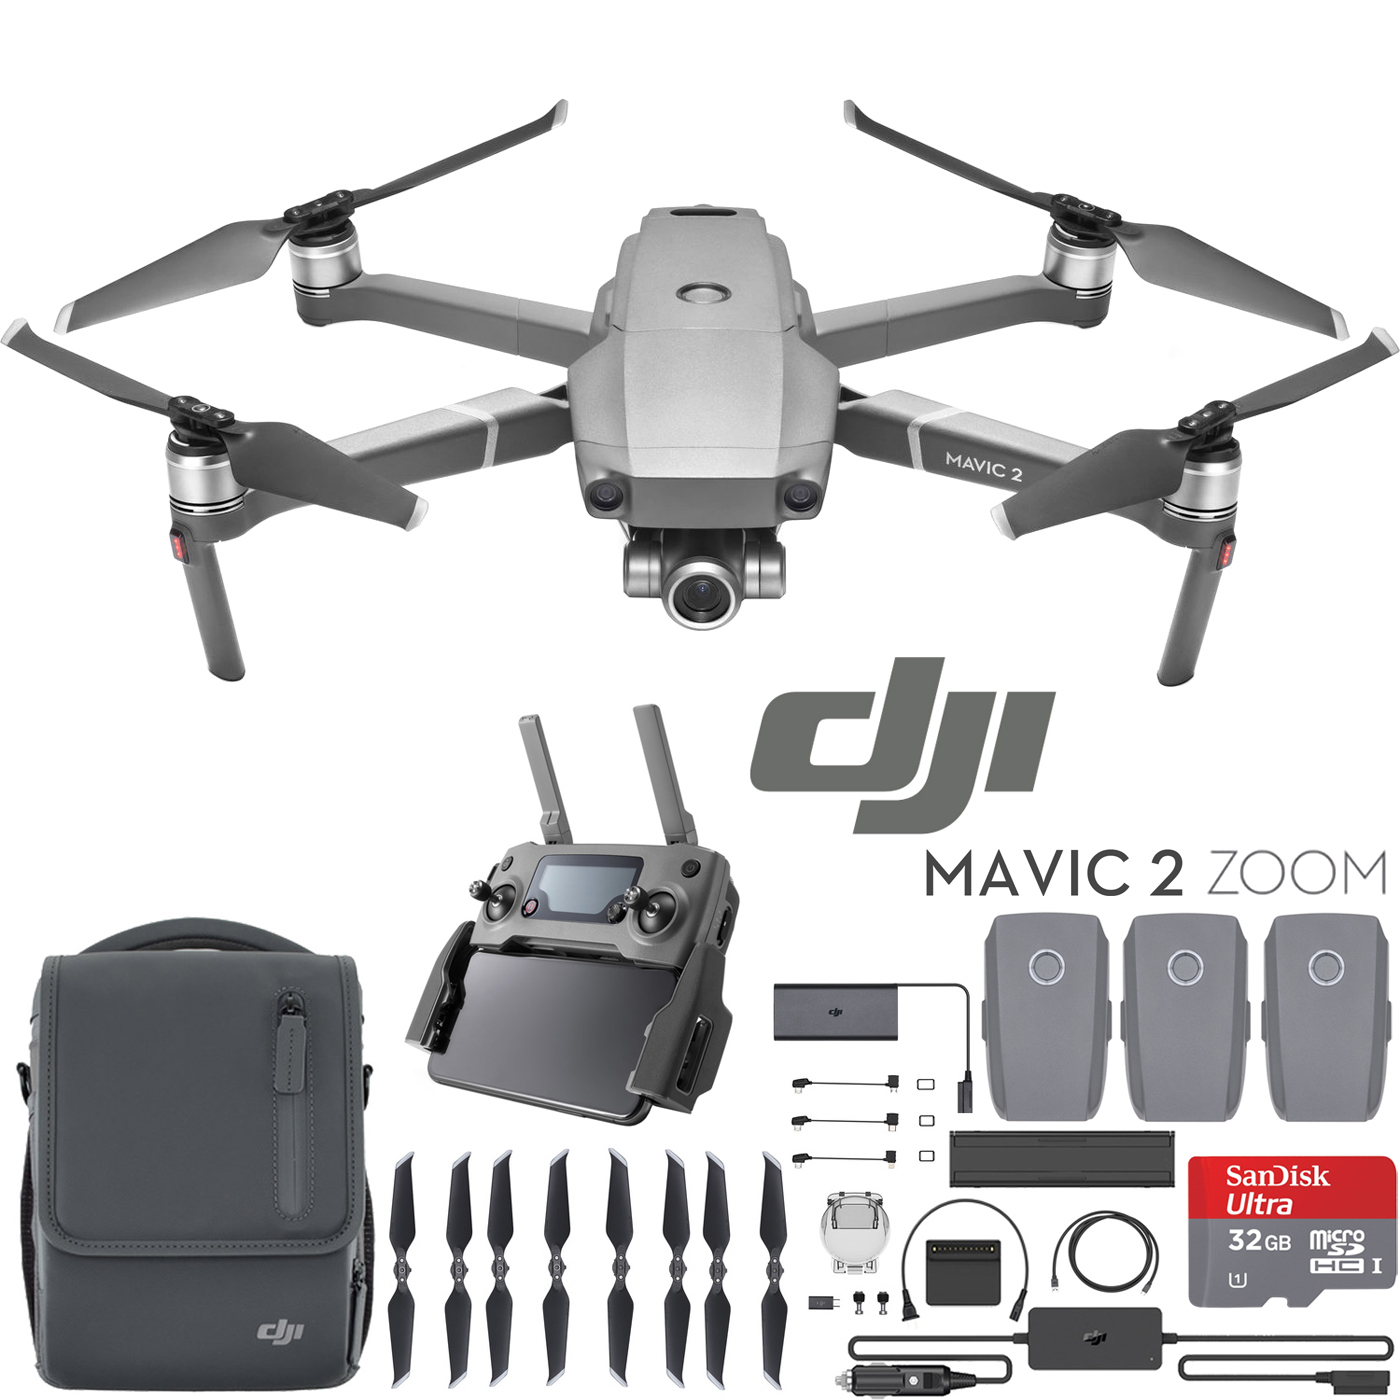 DJI Mavic 2 Zoom Drone Fly More Kit with 24-48mm Lens Full HD Video and Memory Card